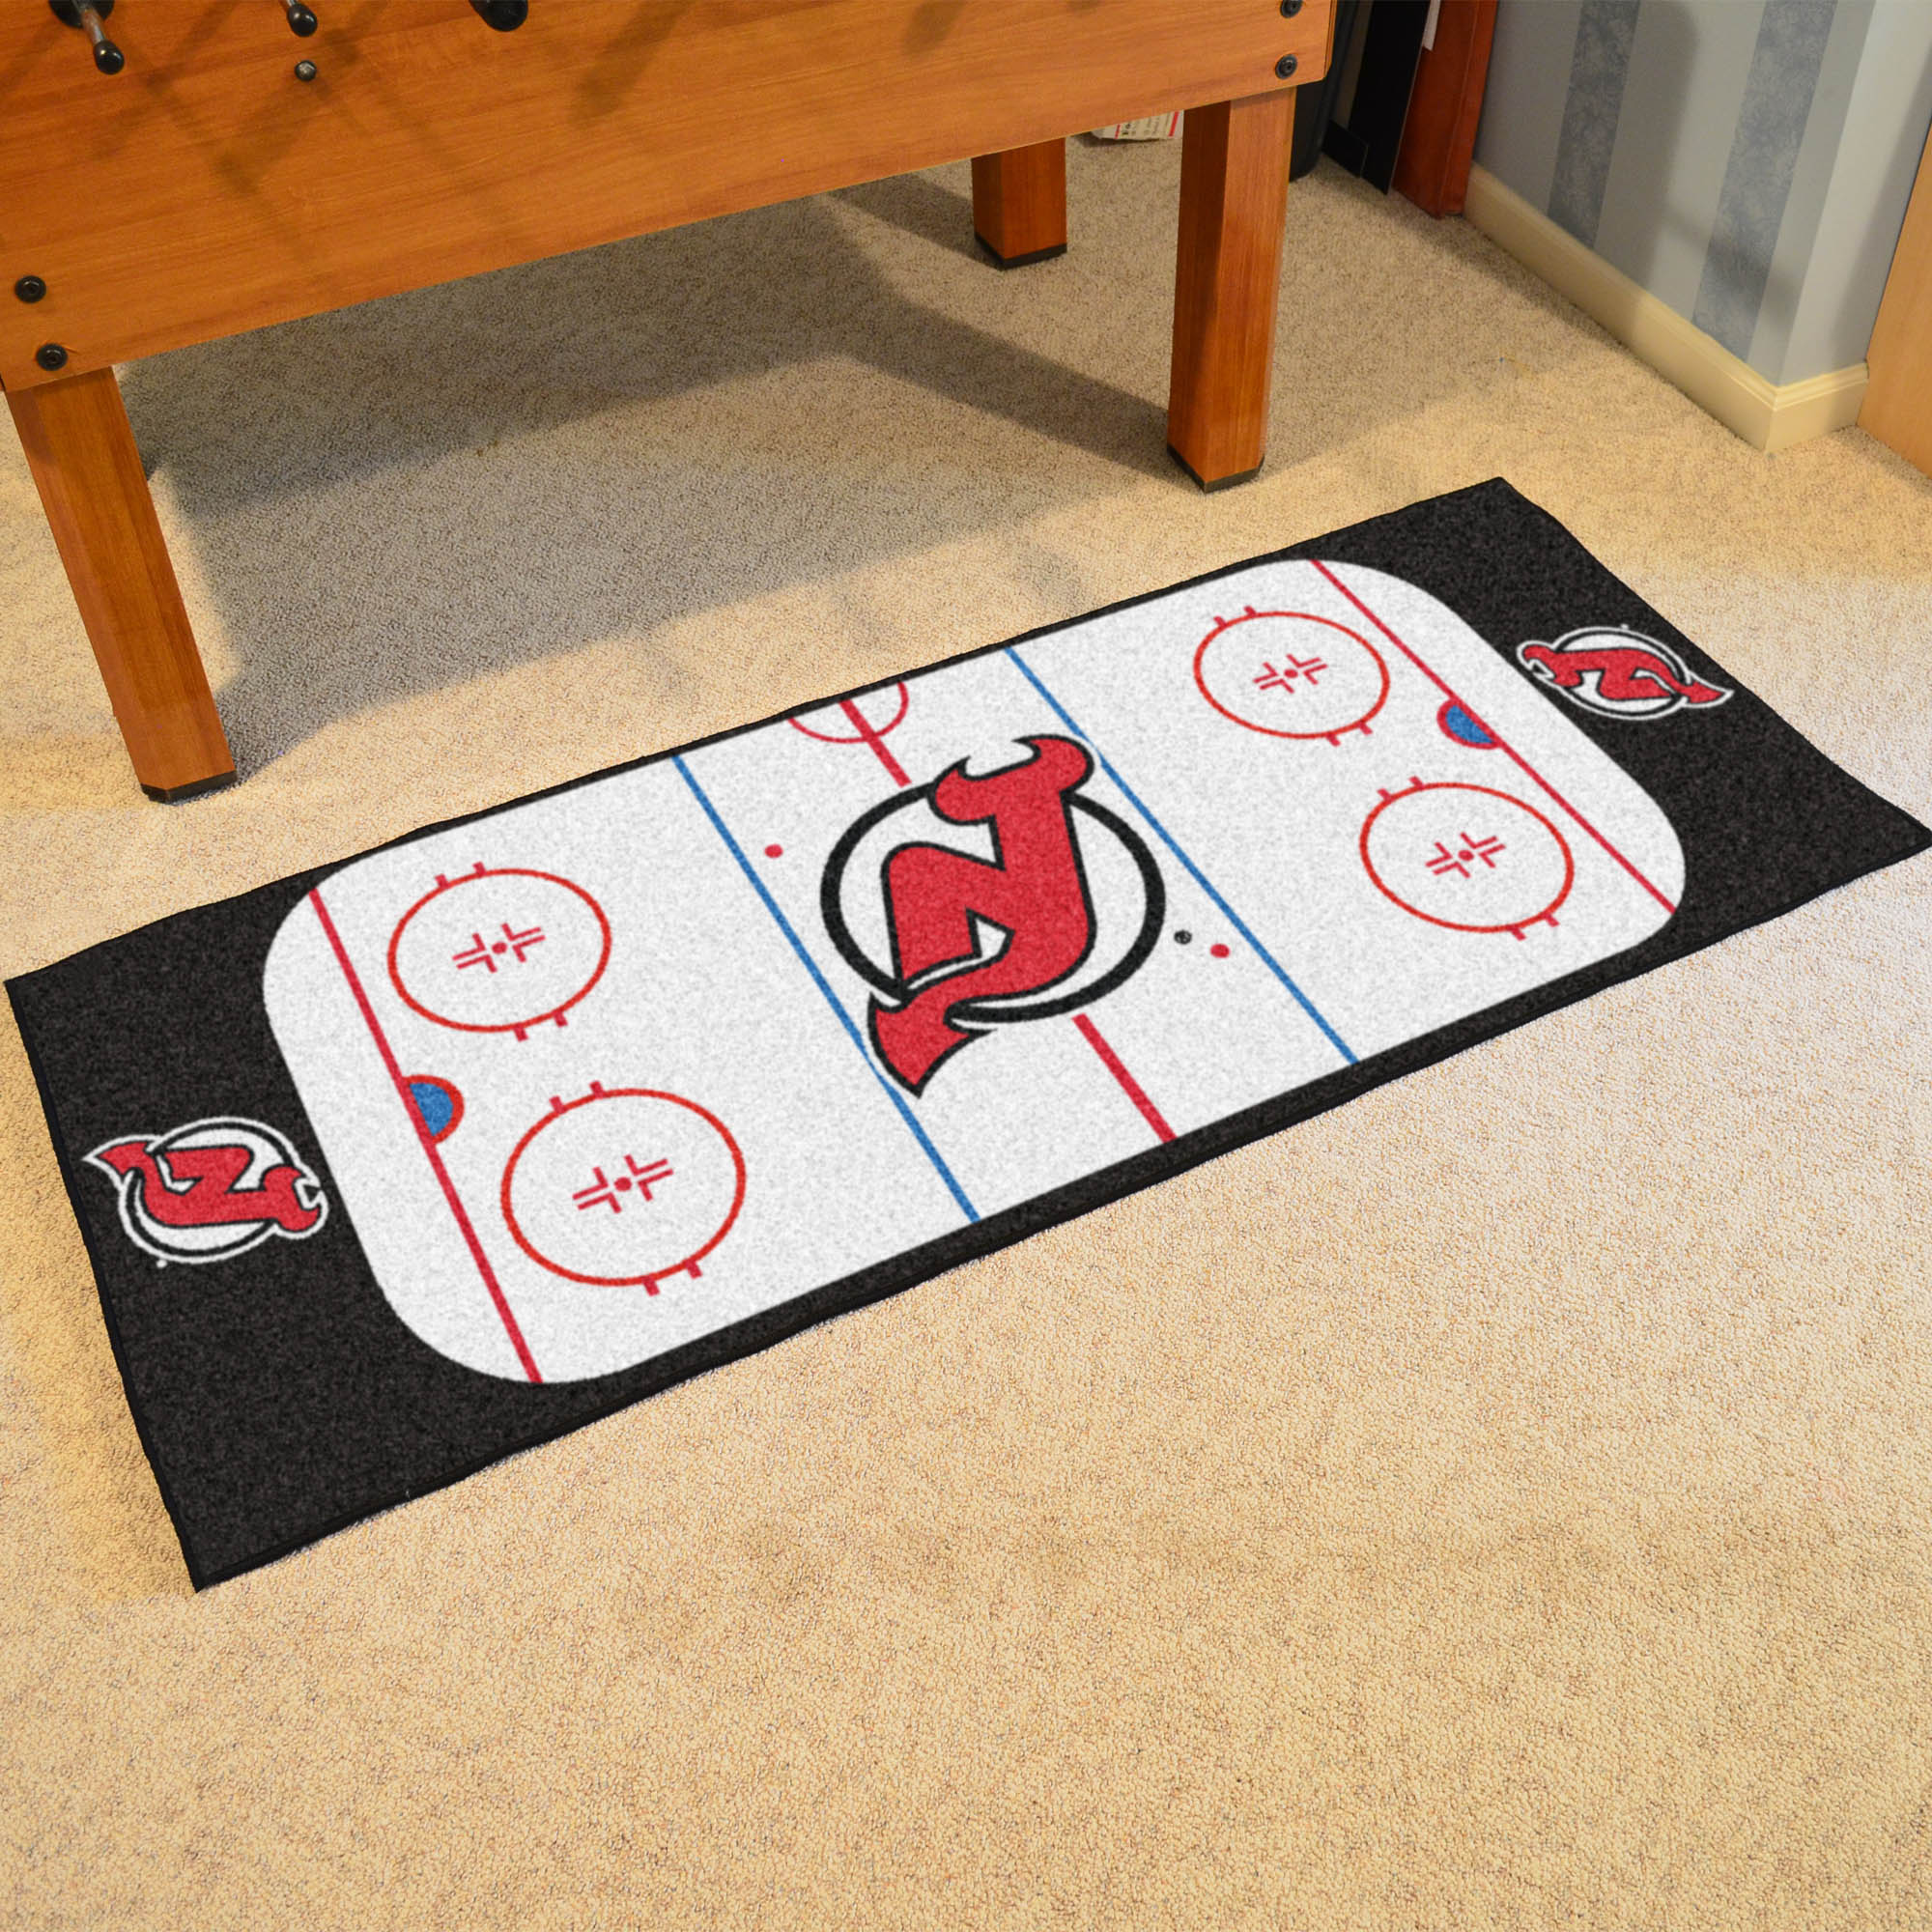 New Jersey Devils 30 x 72 Hockey Rink Carpet Runner